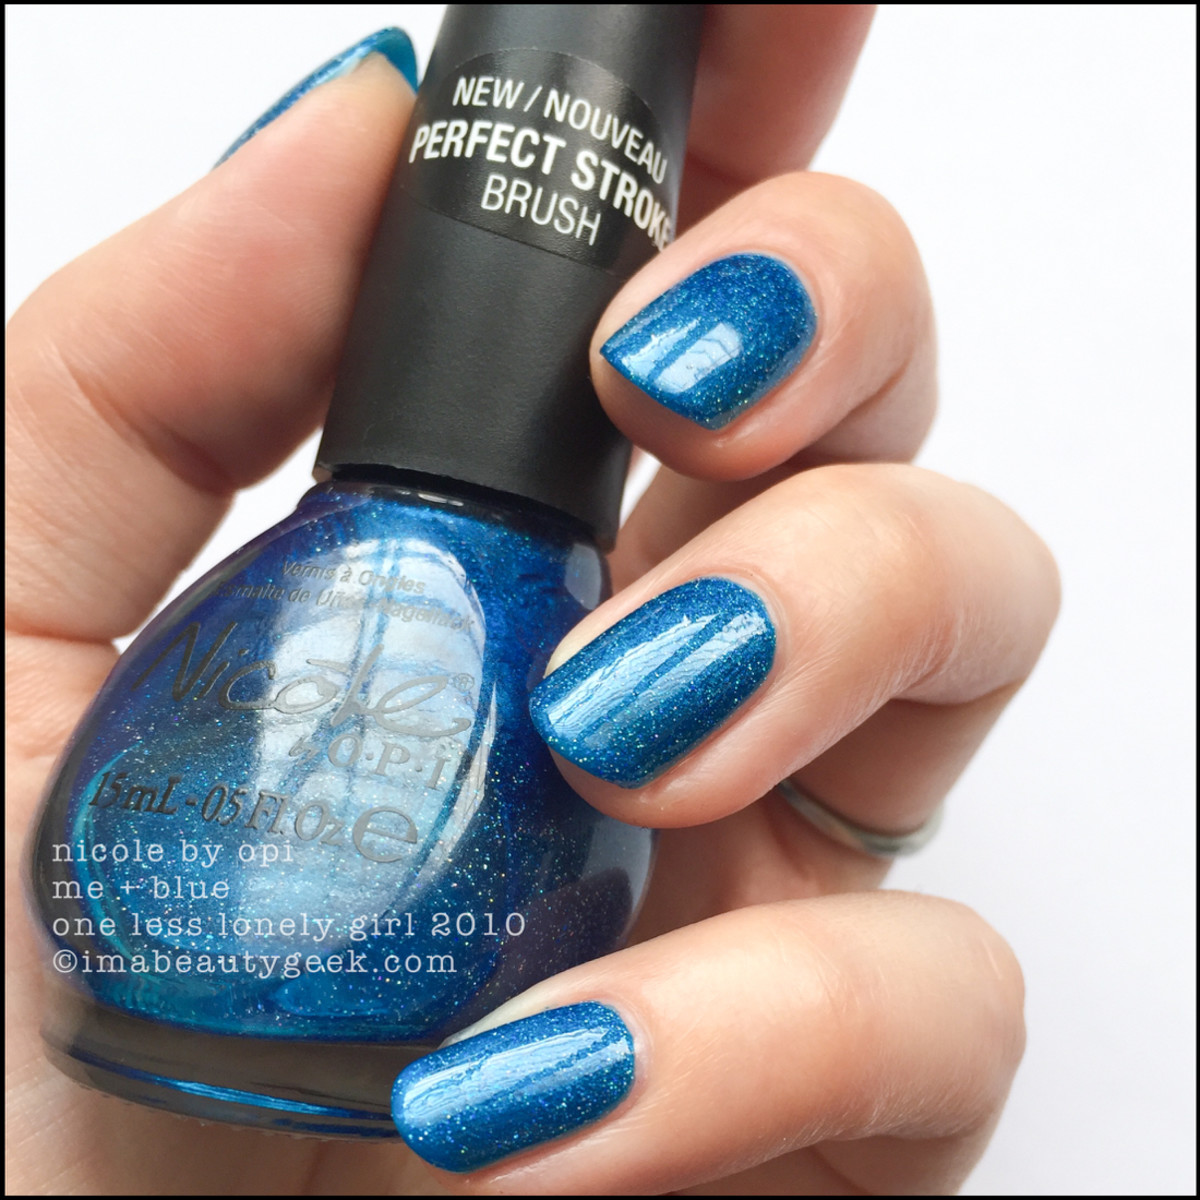 Nicole by OPI Me + Blue w Top Coat_Nicole by OPI Swatches